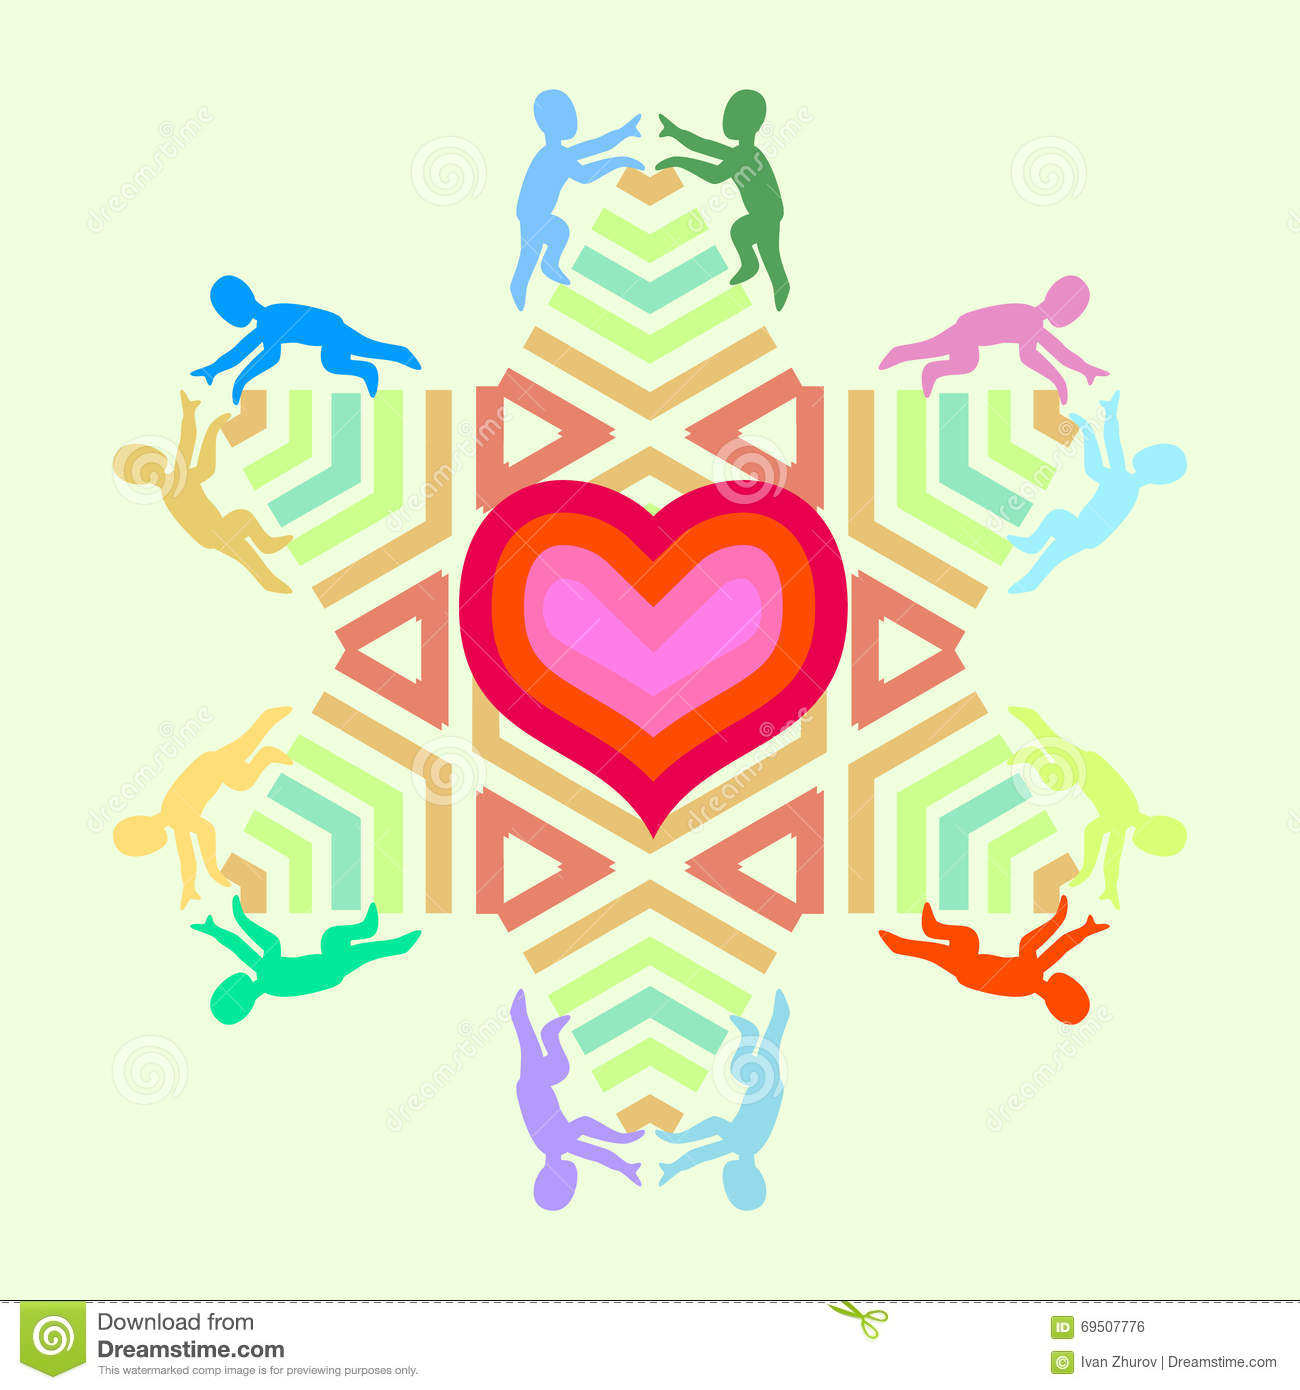 Unity symbol stock photos download 24800 images symbol of love and unity with heart star and people icons heart enclosed in a biocorpaavc Gallery